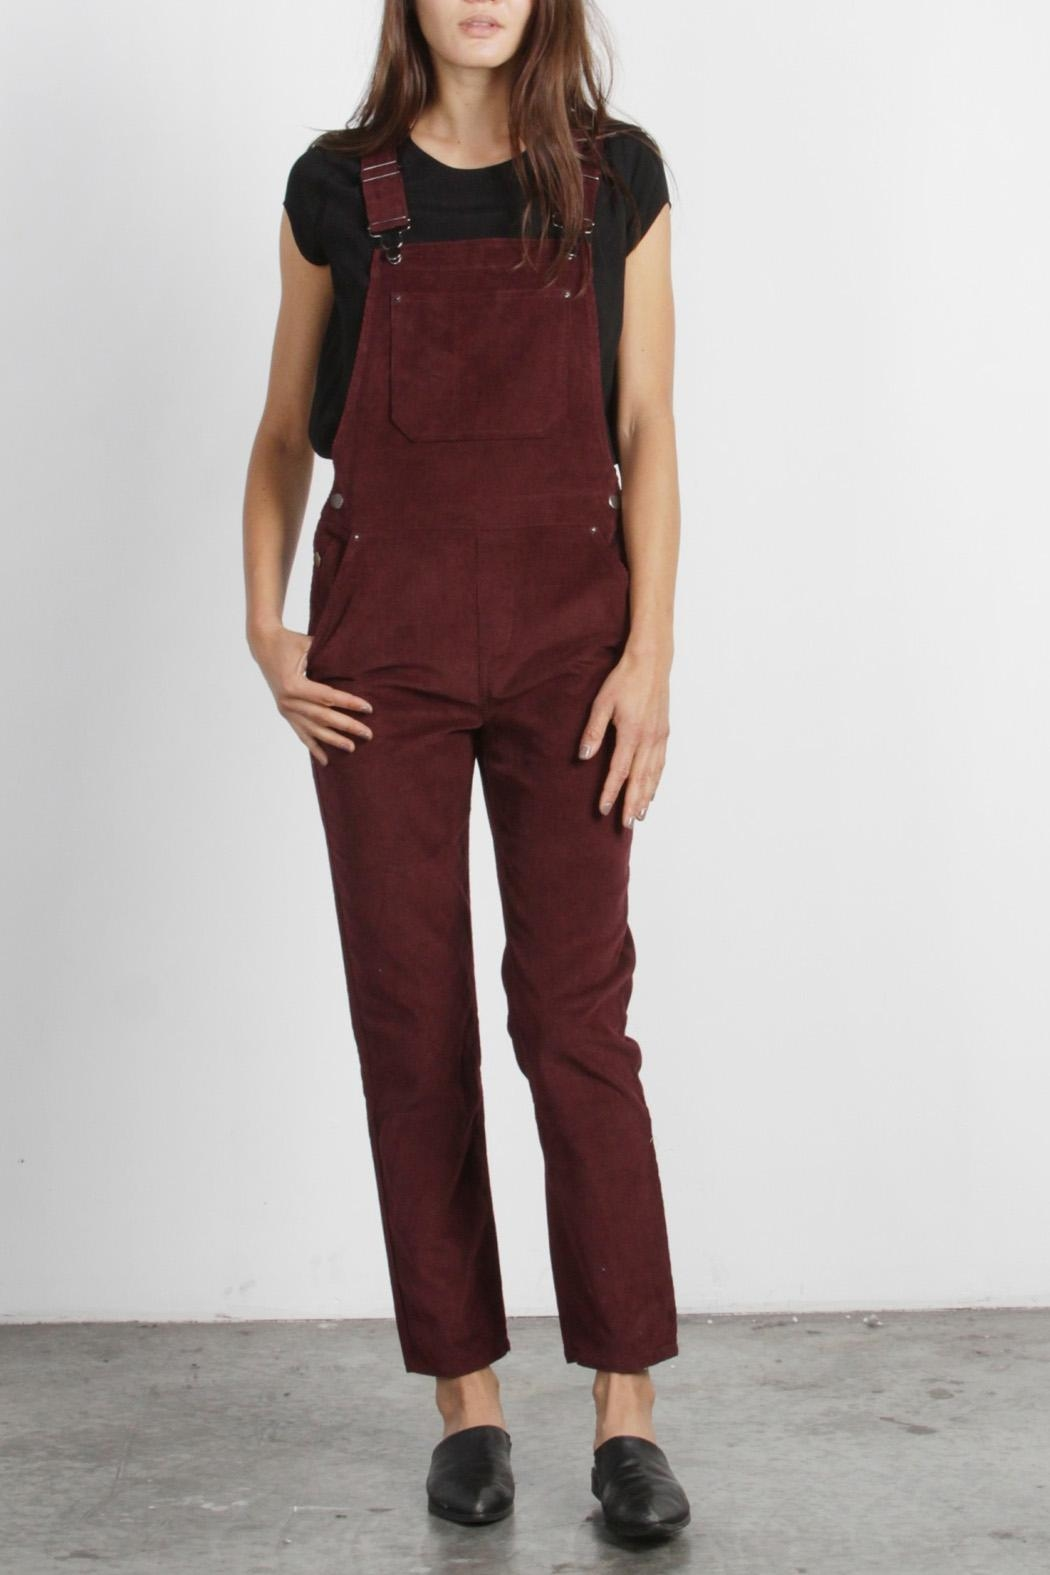 794e5fd65ec Mod Ref Burgundy Corduroy Overalls from Williamsburg by Fanaberie ...